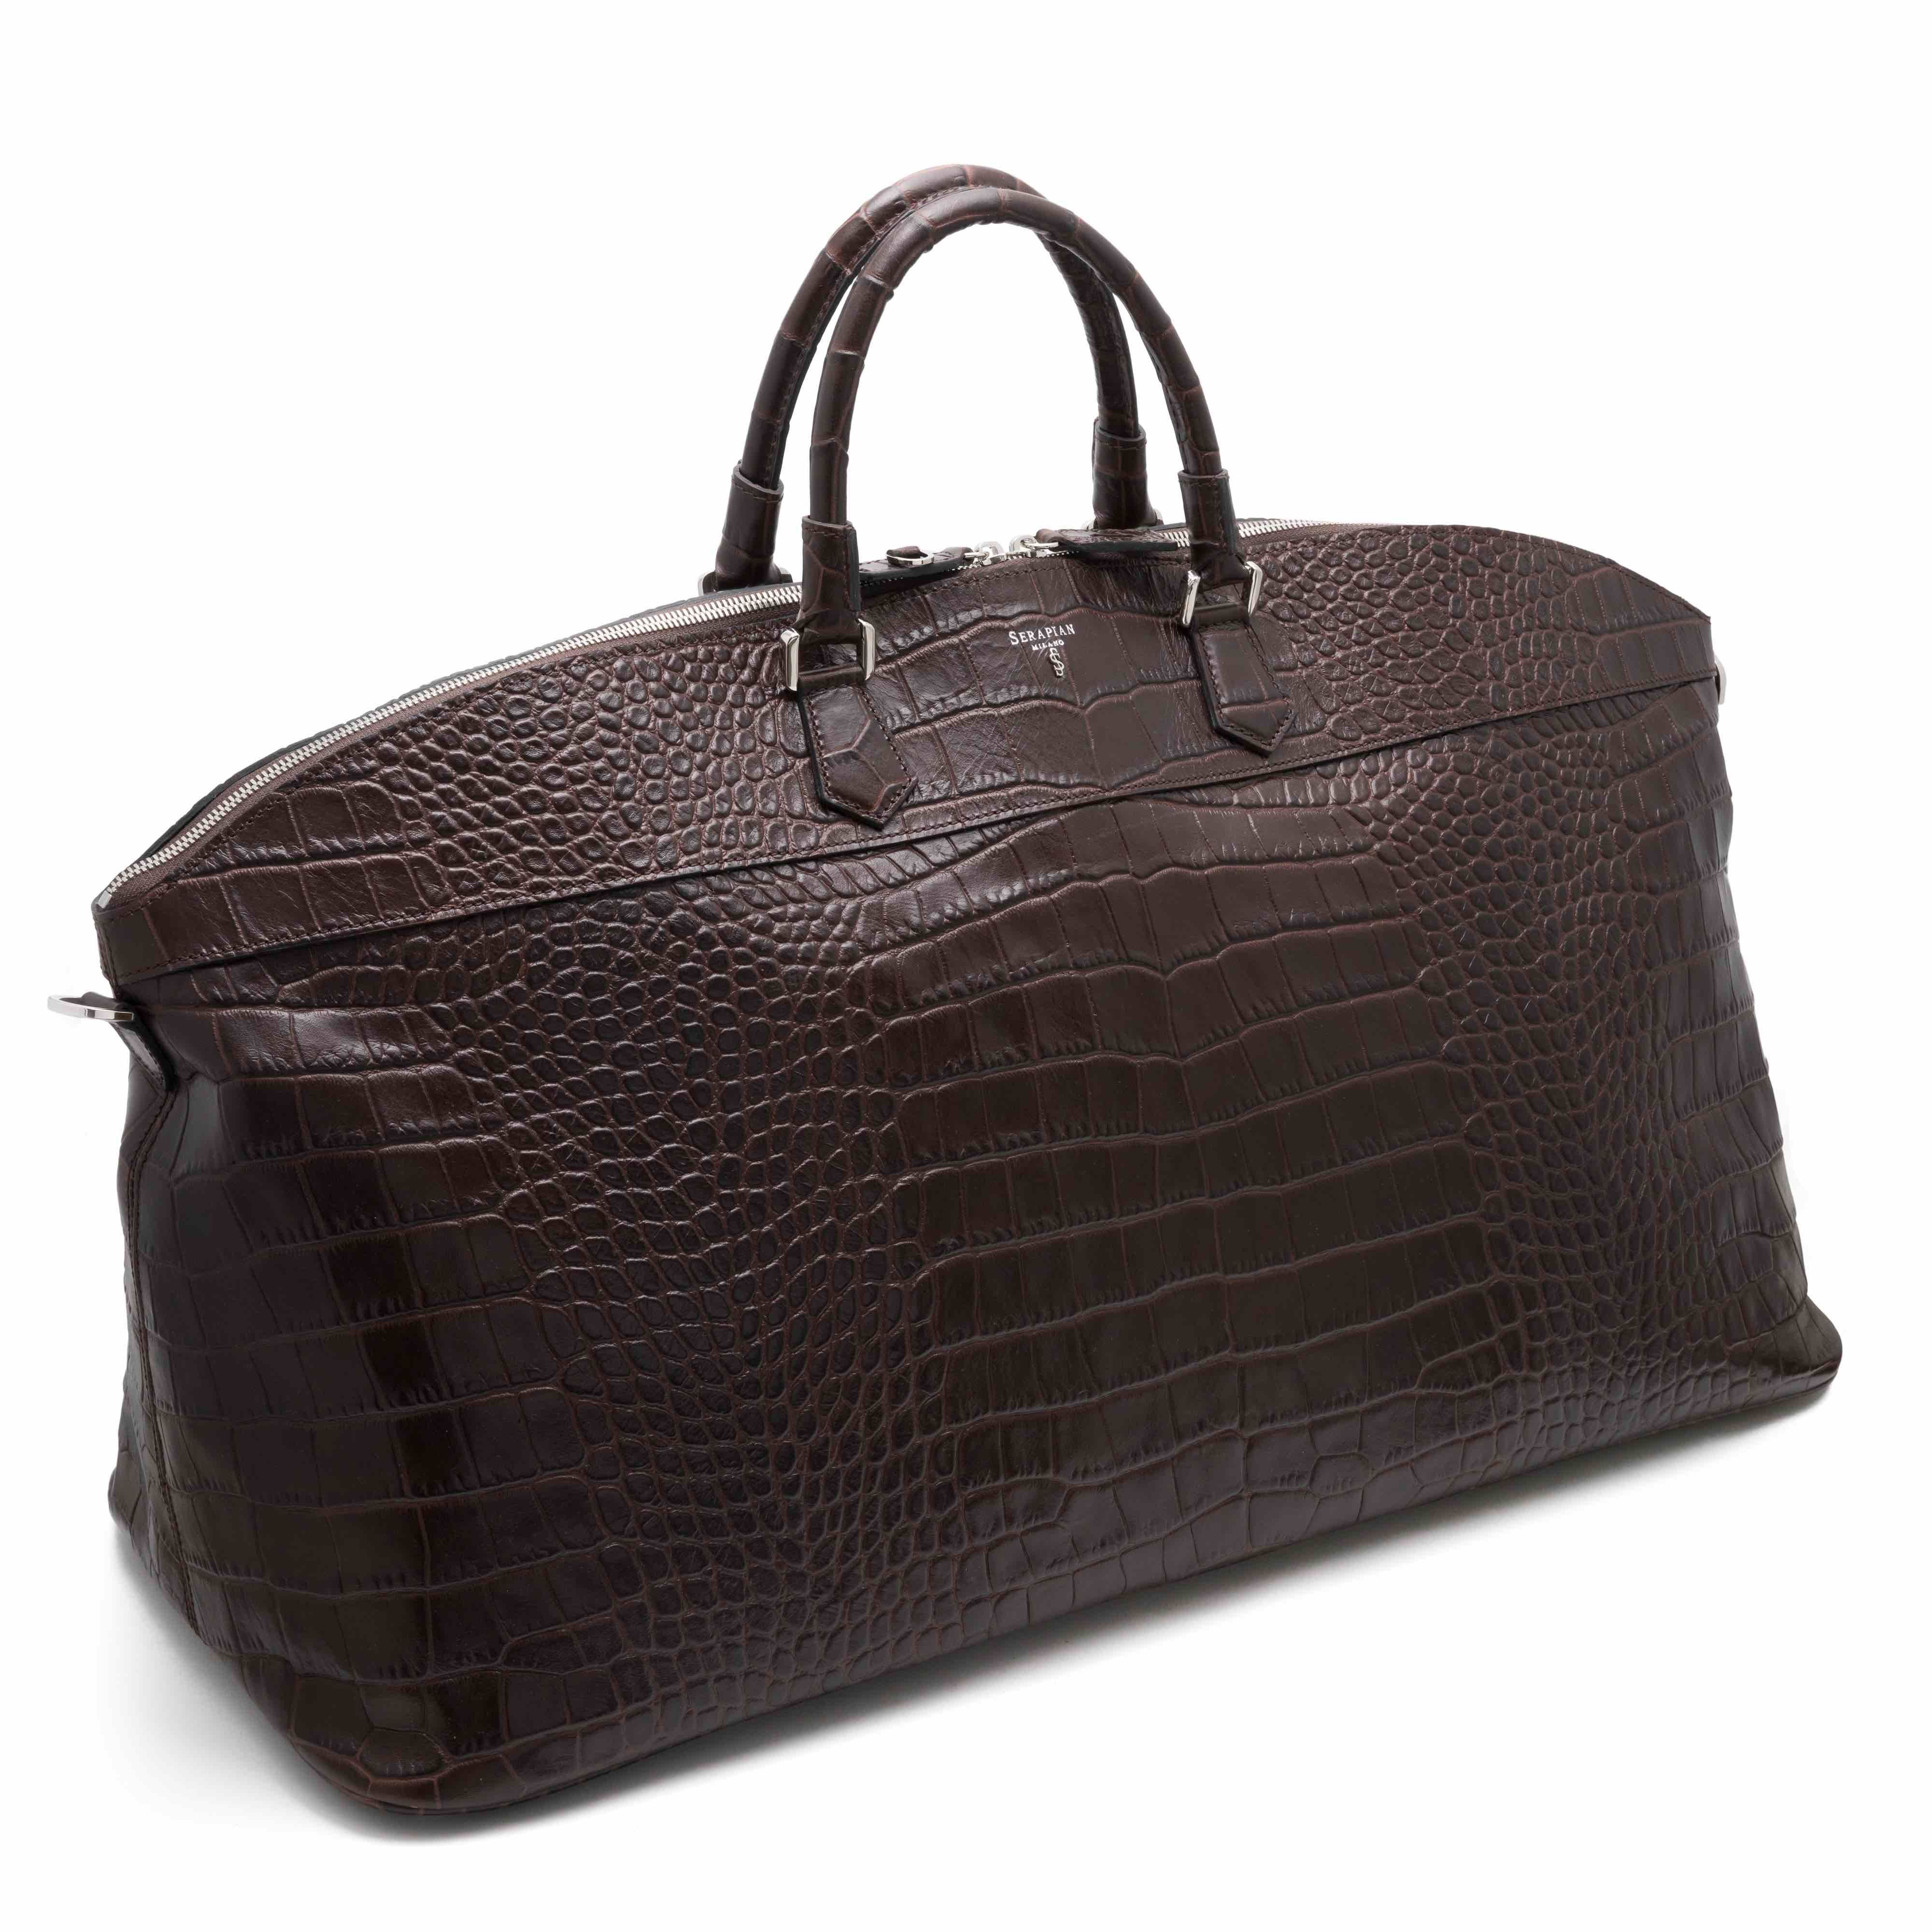 ed8e82a90f3 #Leisure14 for man Travel Tote, Luxury Bags, Online Bags, Men's Collection,